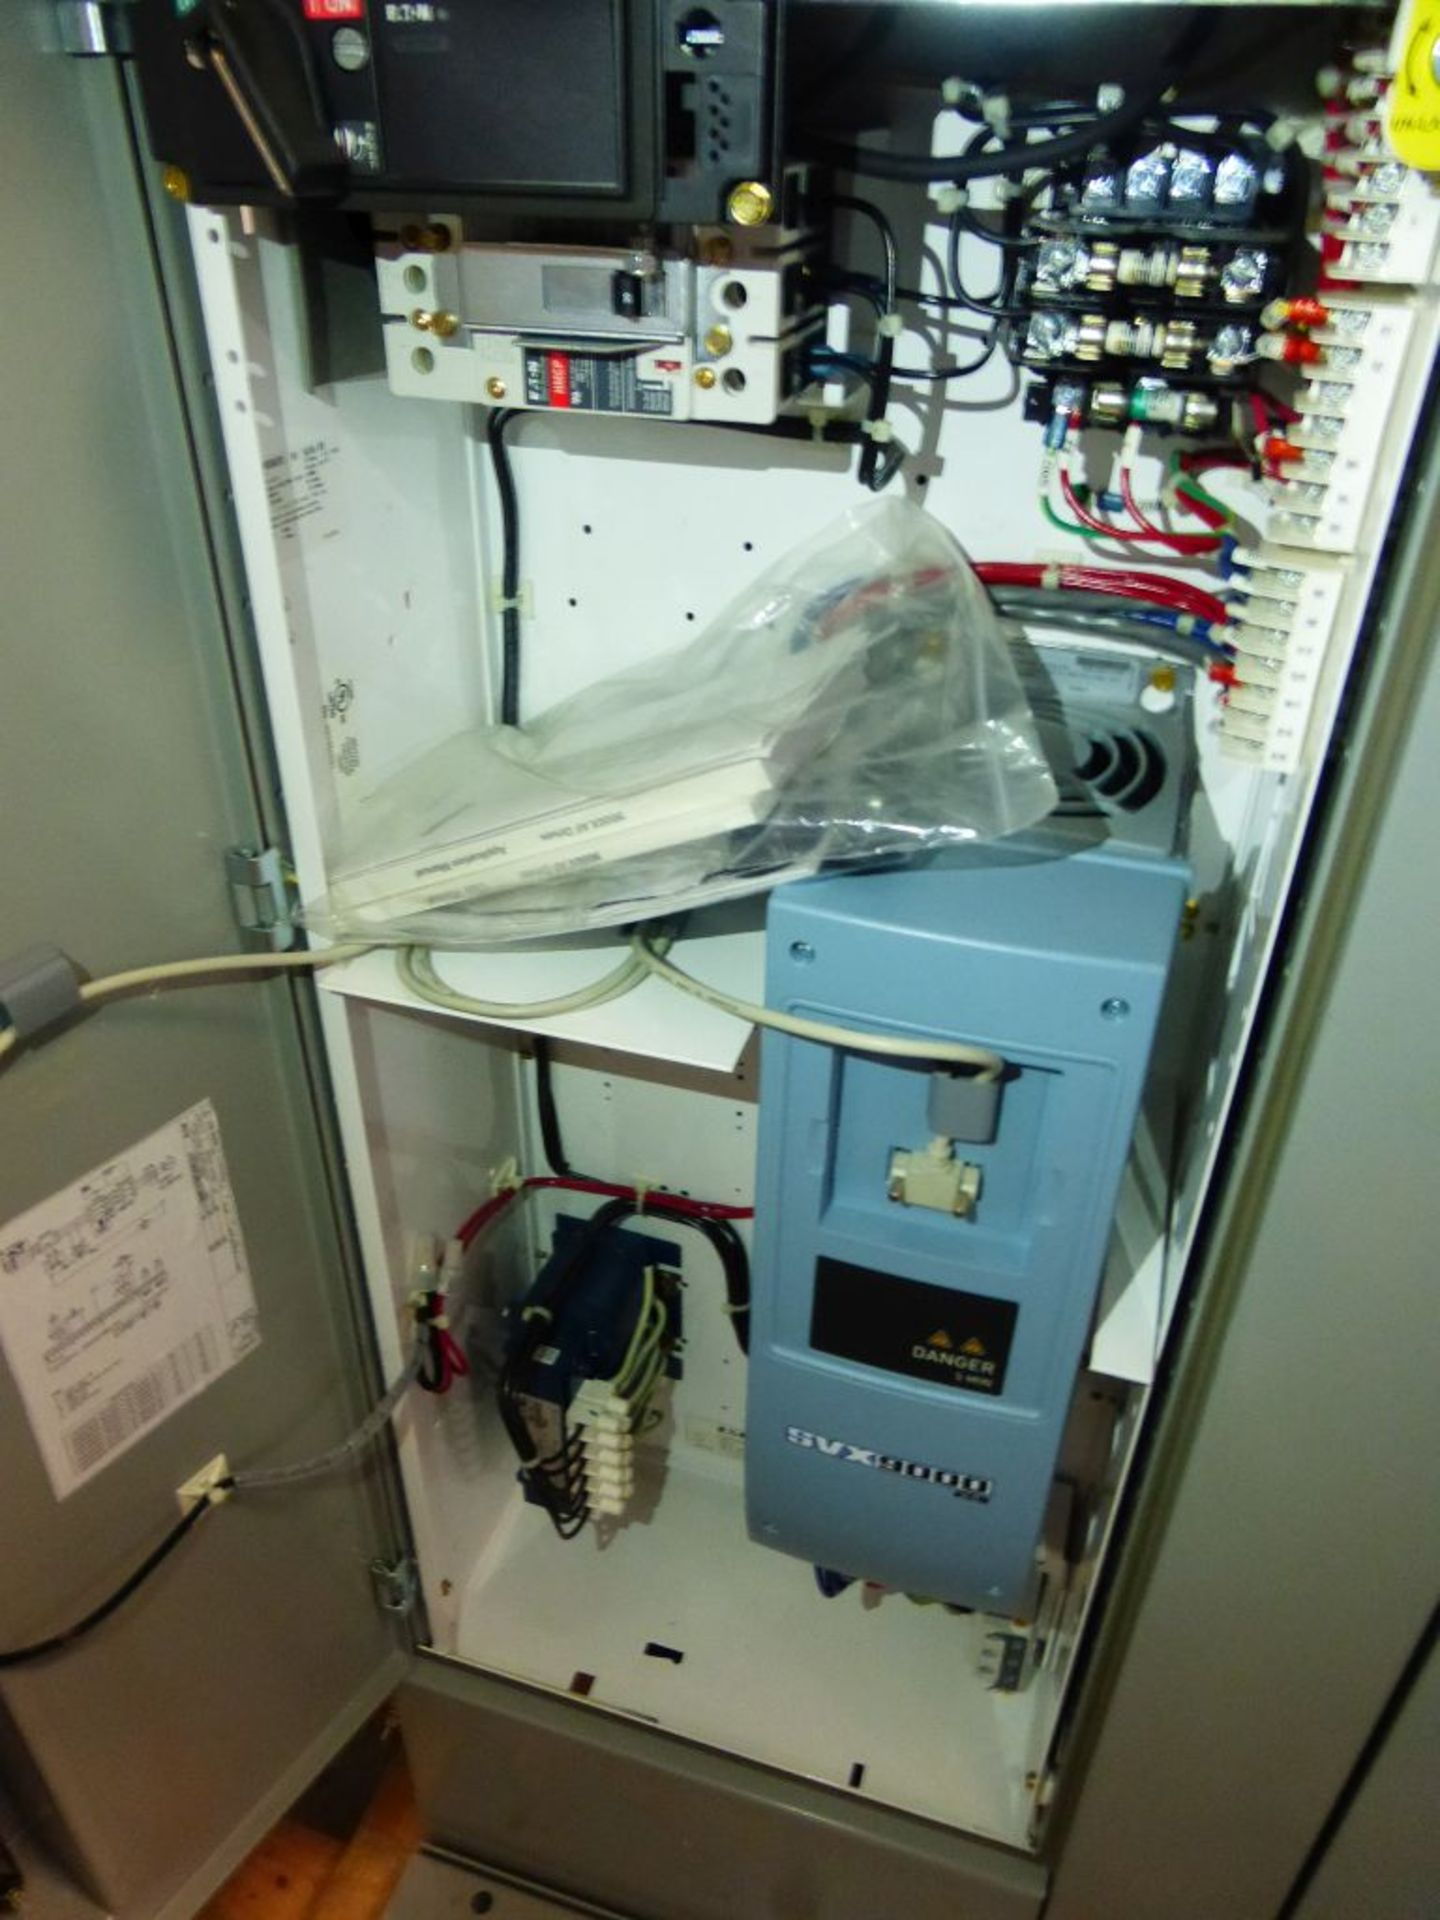 Eaton Freedom 2100 Series Motor Control Center | (2) F206-15A-10HP; (1) FDRB-250A; (1) FDRB-400A; ( - Image 95 of 104